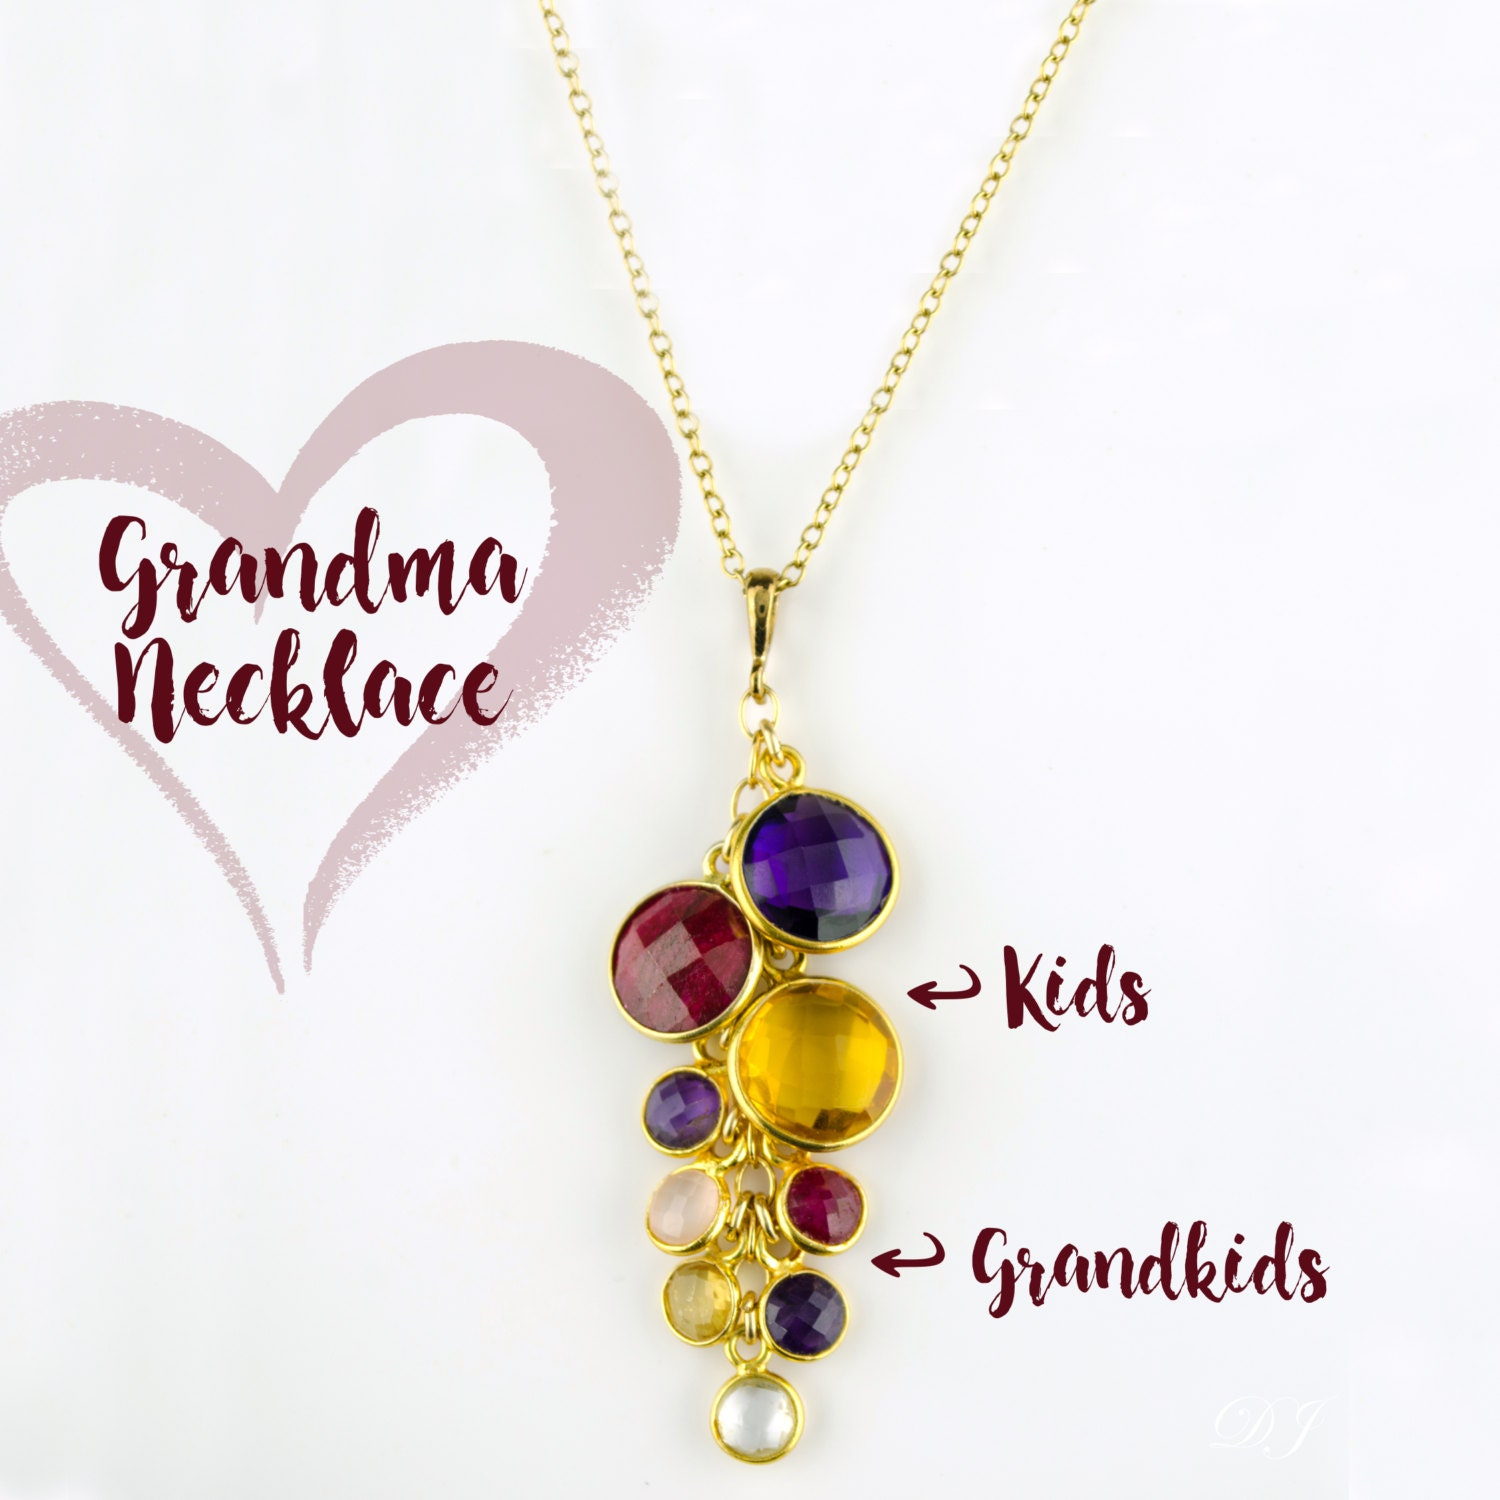 love with grandma names personalized necklace pin gift and grandmother beautiful birthstone a stylish is would birthstones any grandkids grandkid